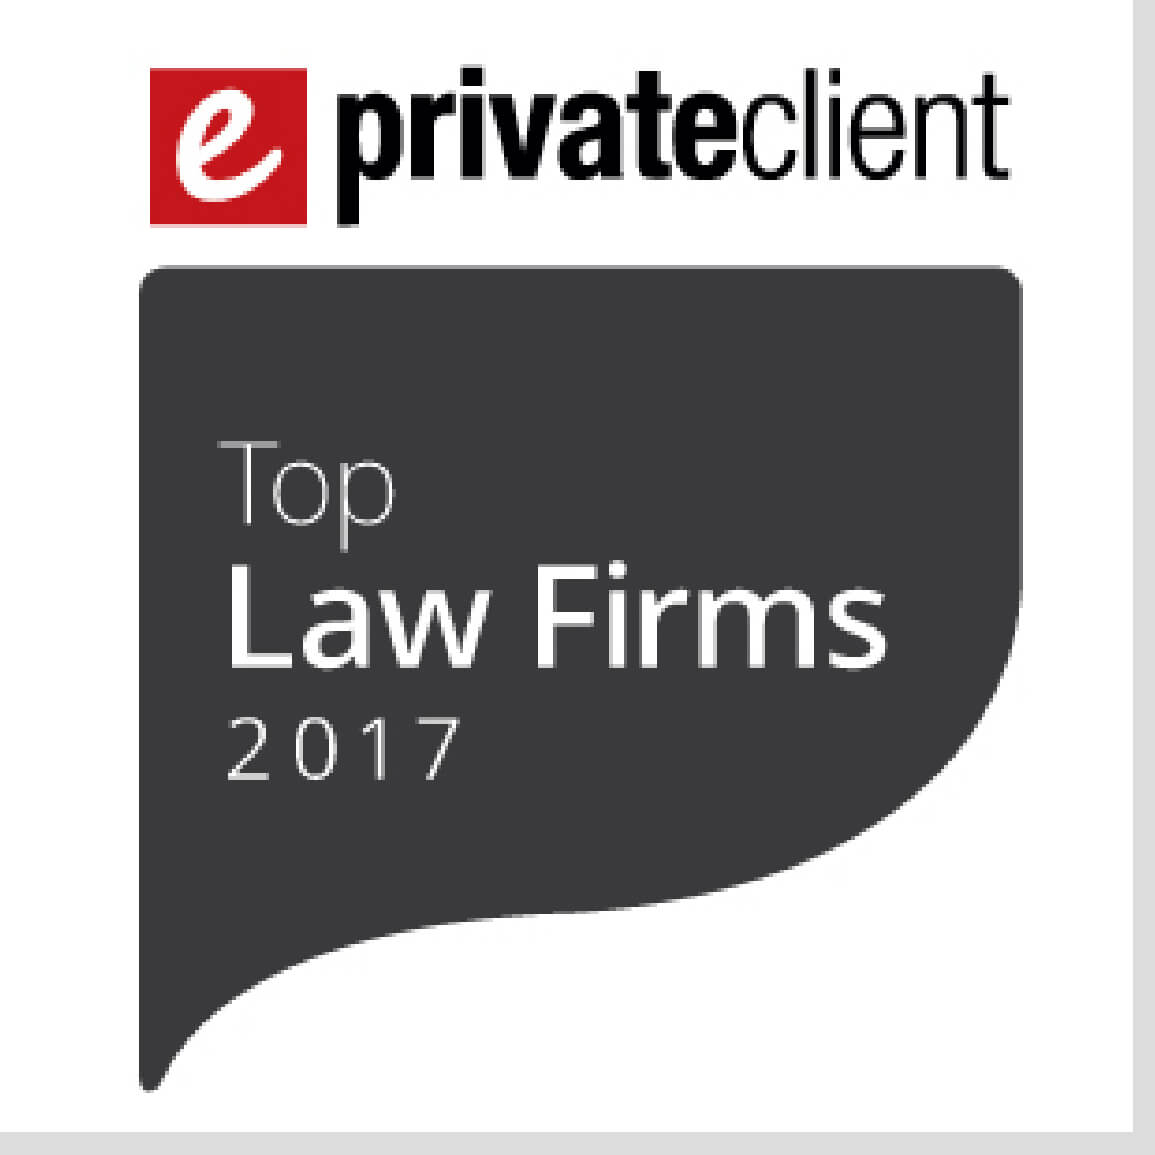 eprivateclient logo - Top Law Firms - Veale Wasbrough Vizards